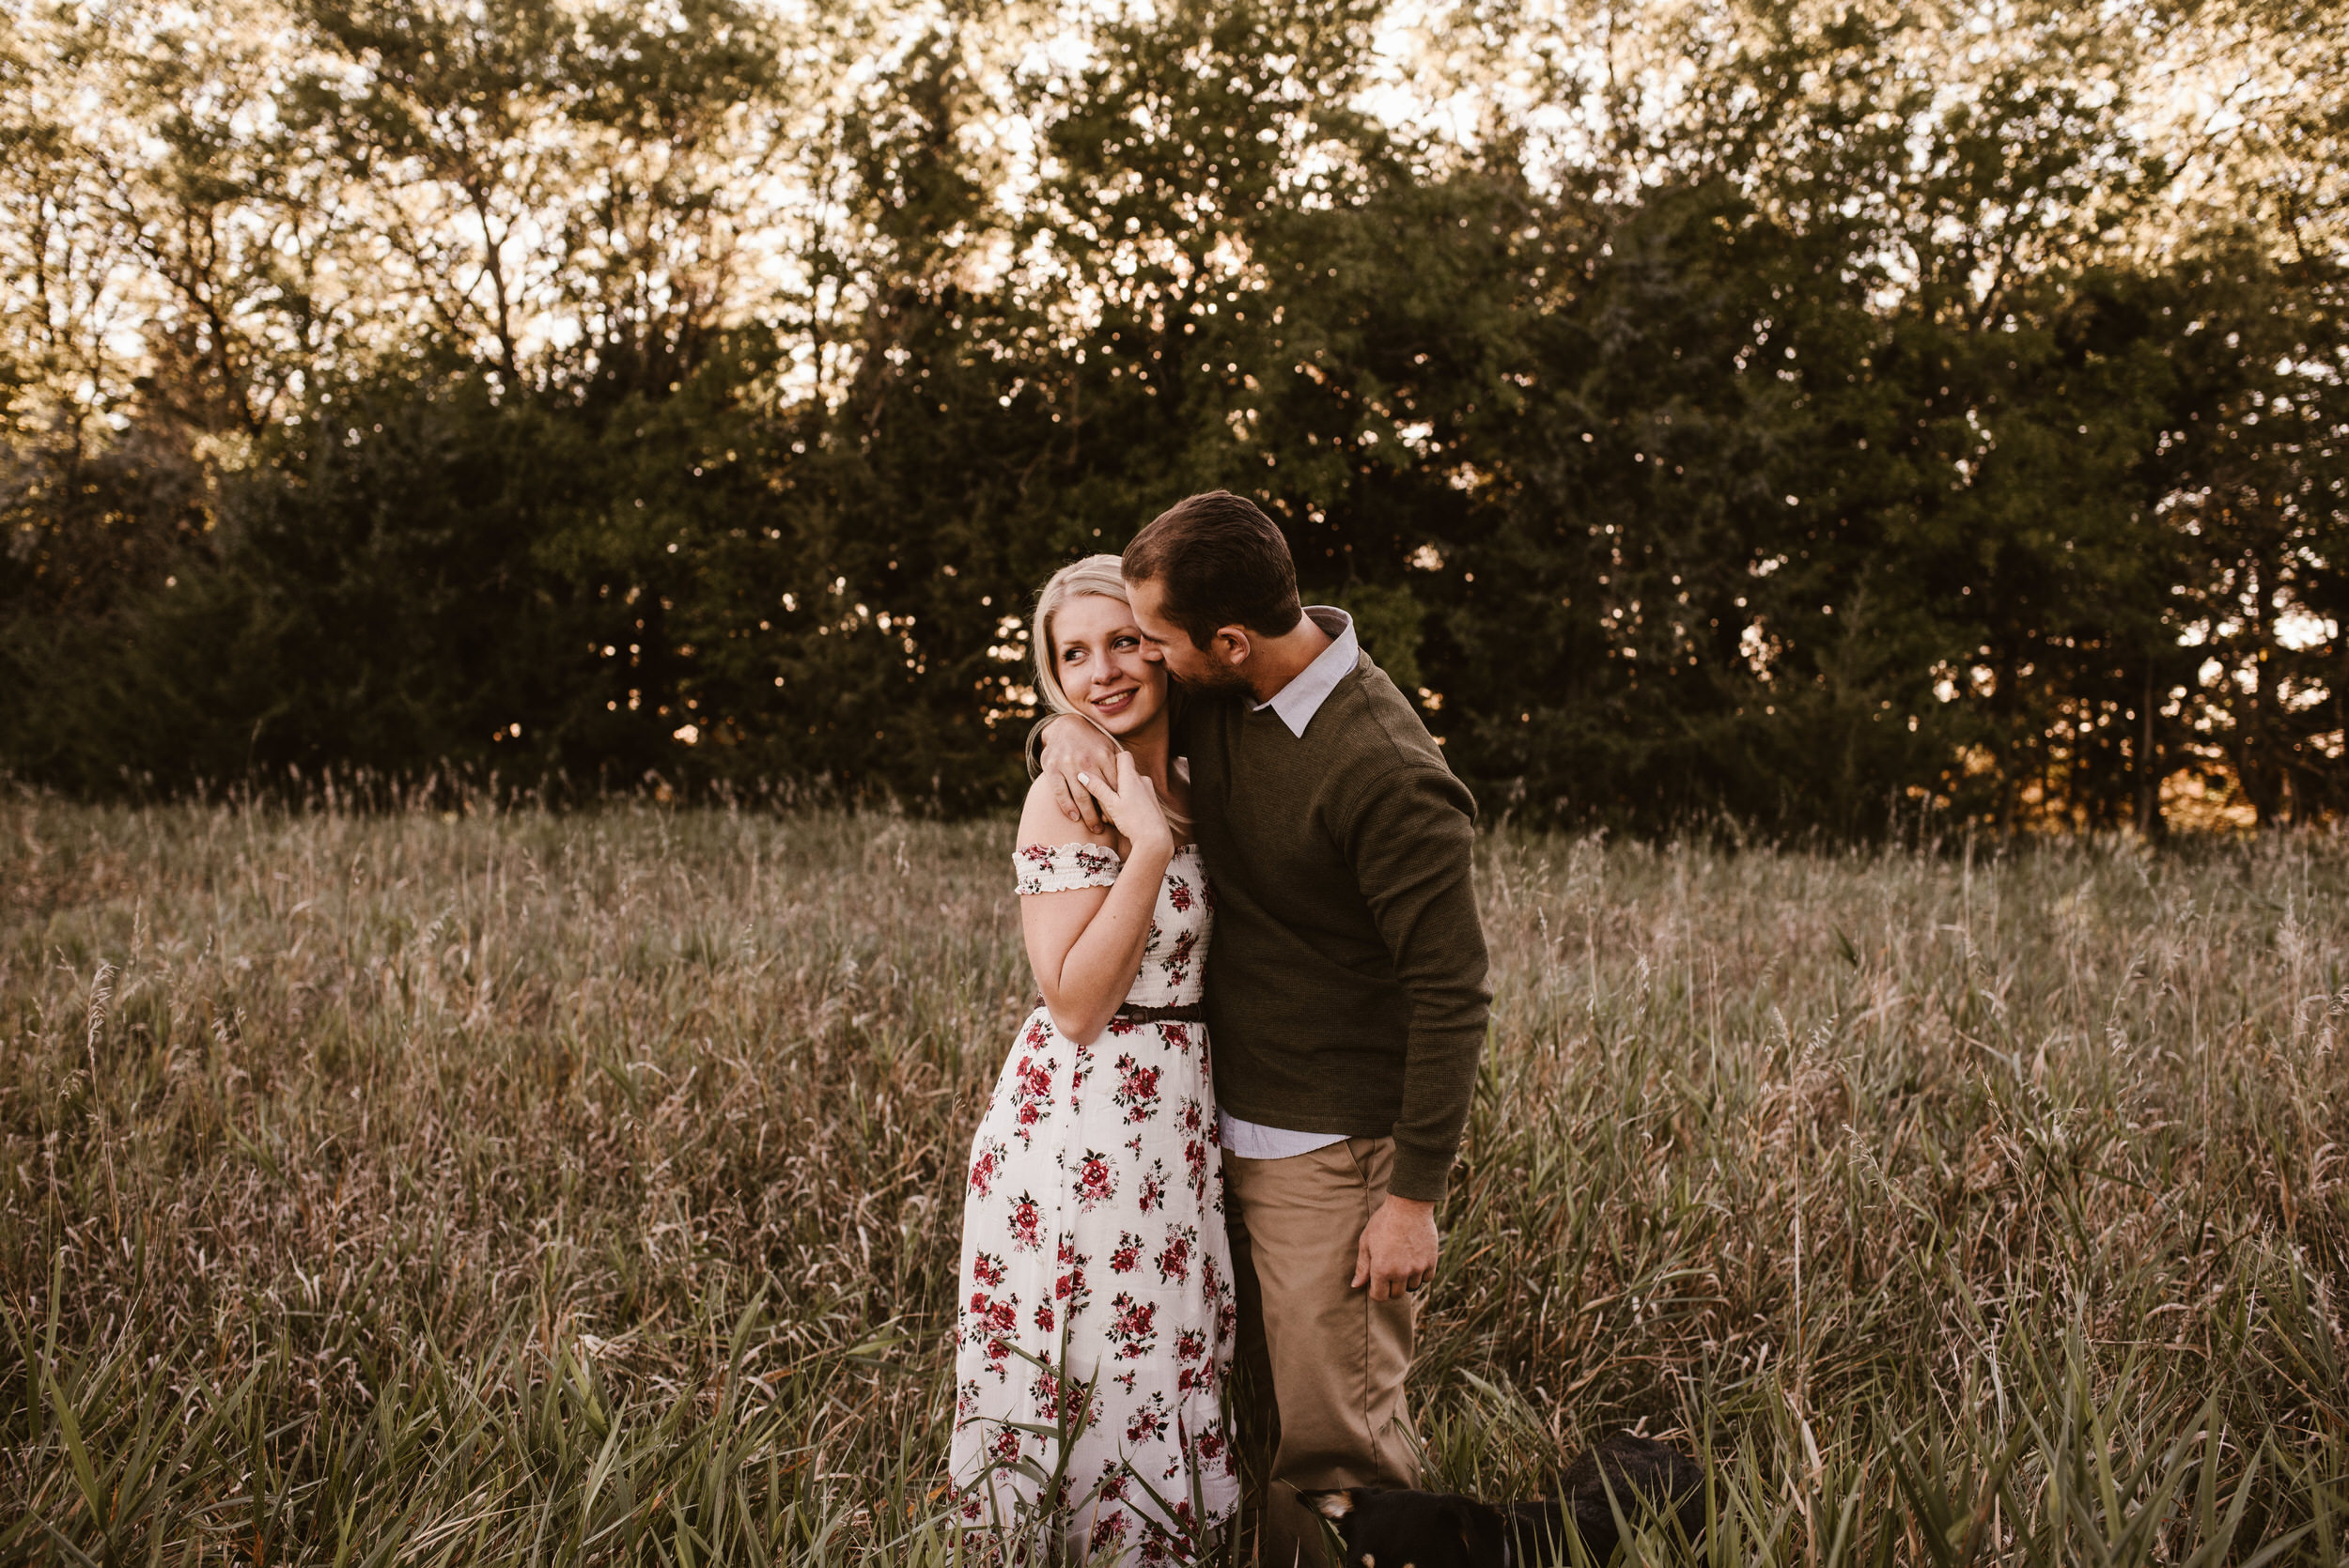 Nebraska Engagement Photographer Kaylie Sirek Photography 08.jpg